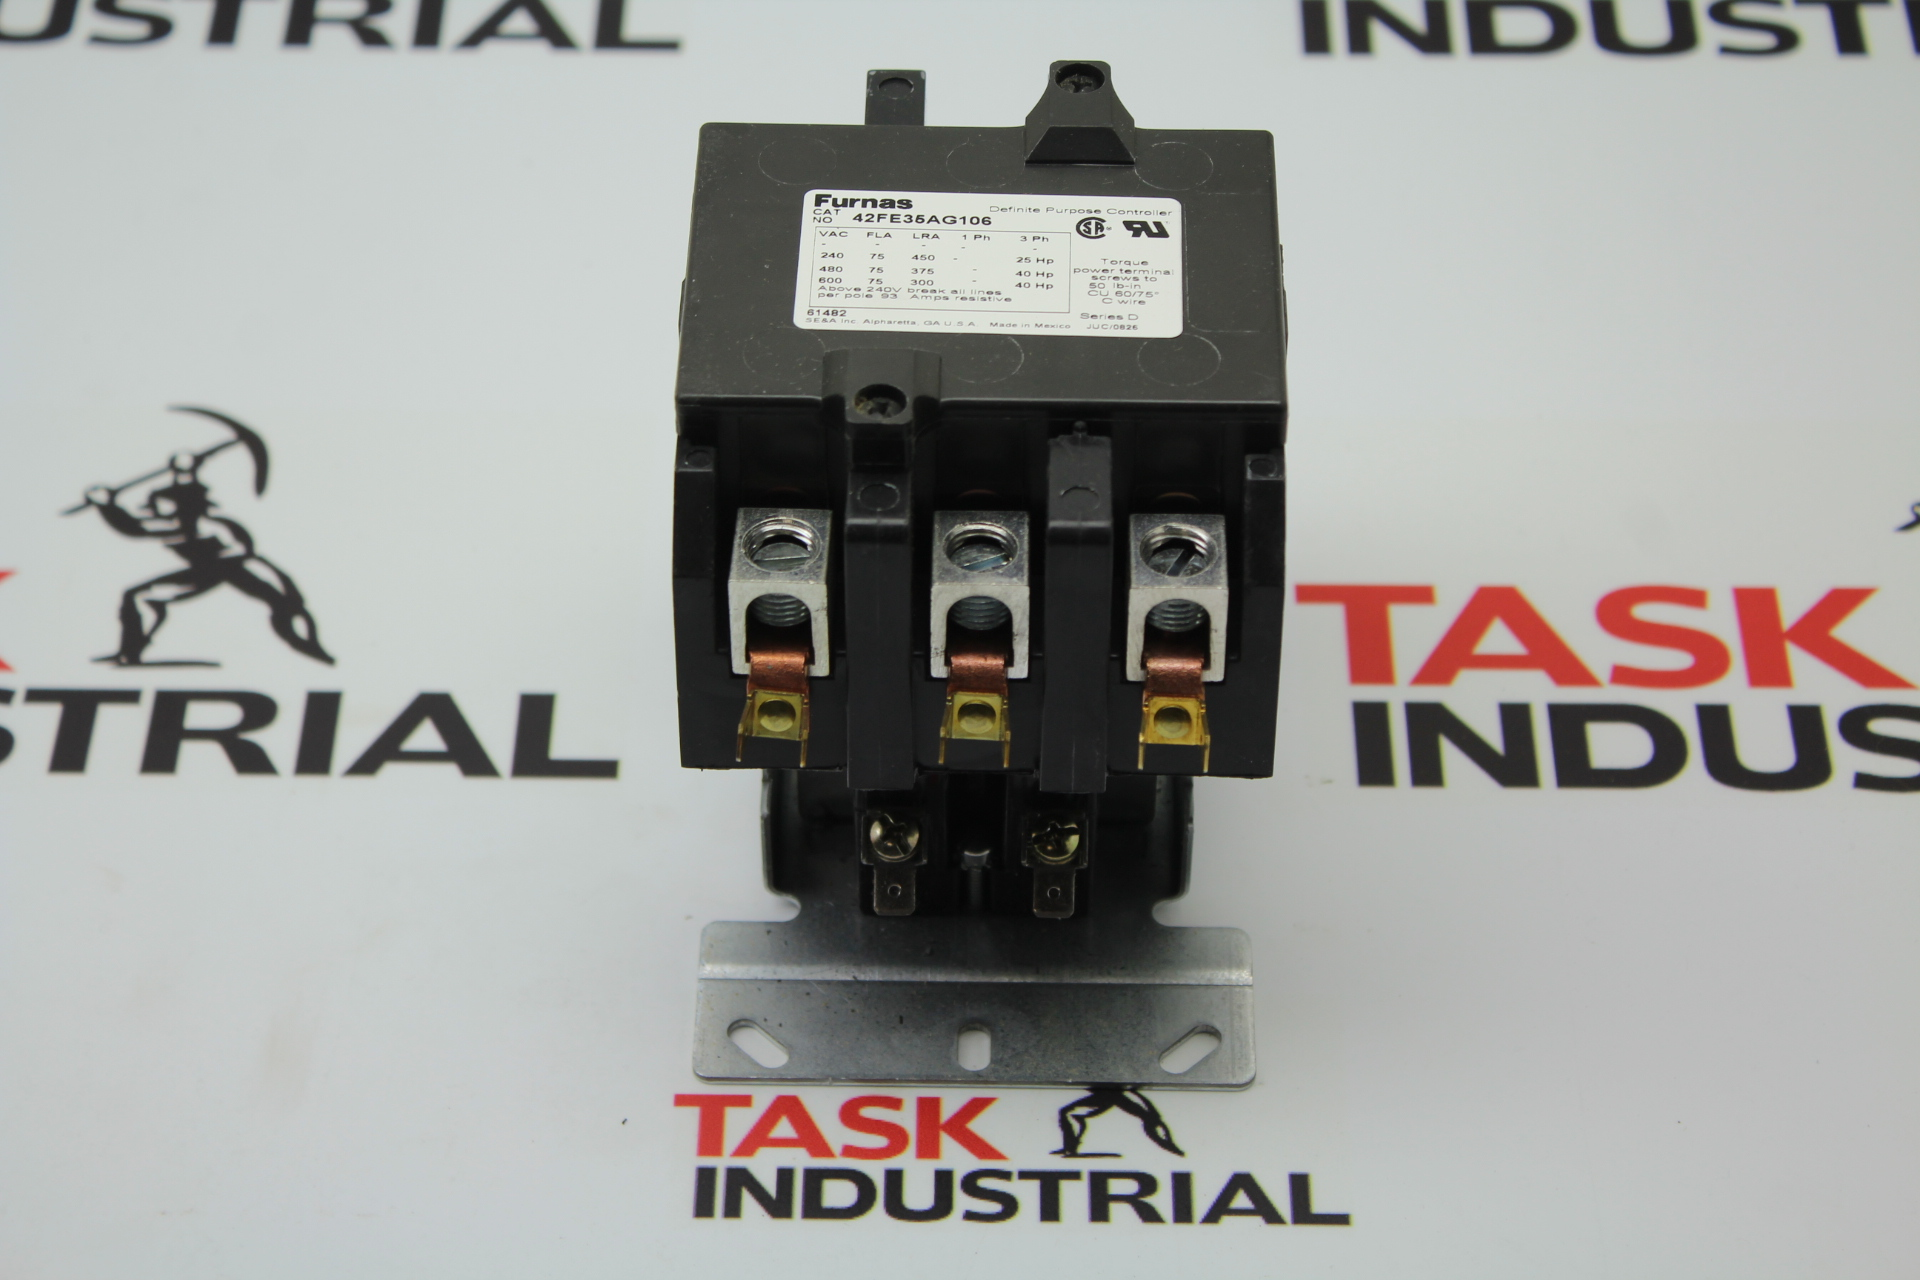 Furnas Definite Purpose Magnetic Contactor 42FE35AG106 3 Pole